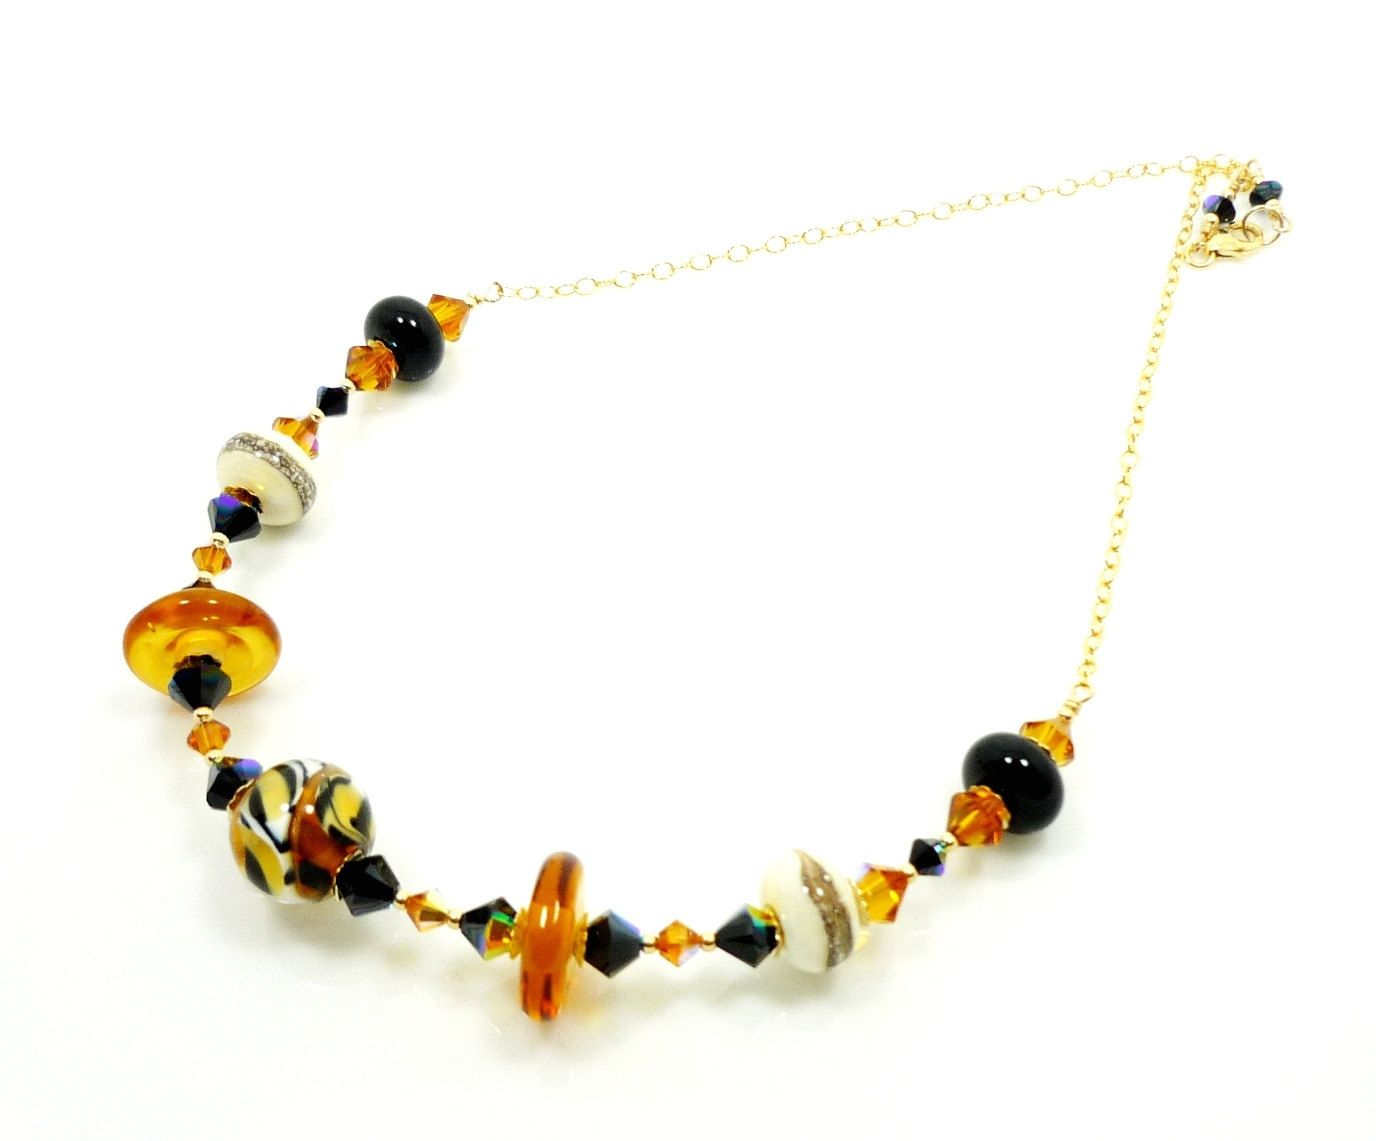 Animal Print Necklace Lampwork Necklace Beaded Necklace Glass Bead Jewelry Beadwork Necklace Animal Print JewelryUnique Trendy Jewelry (58.00 USD) by BeadzandMore